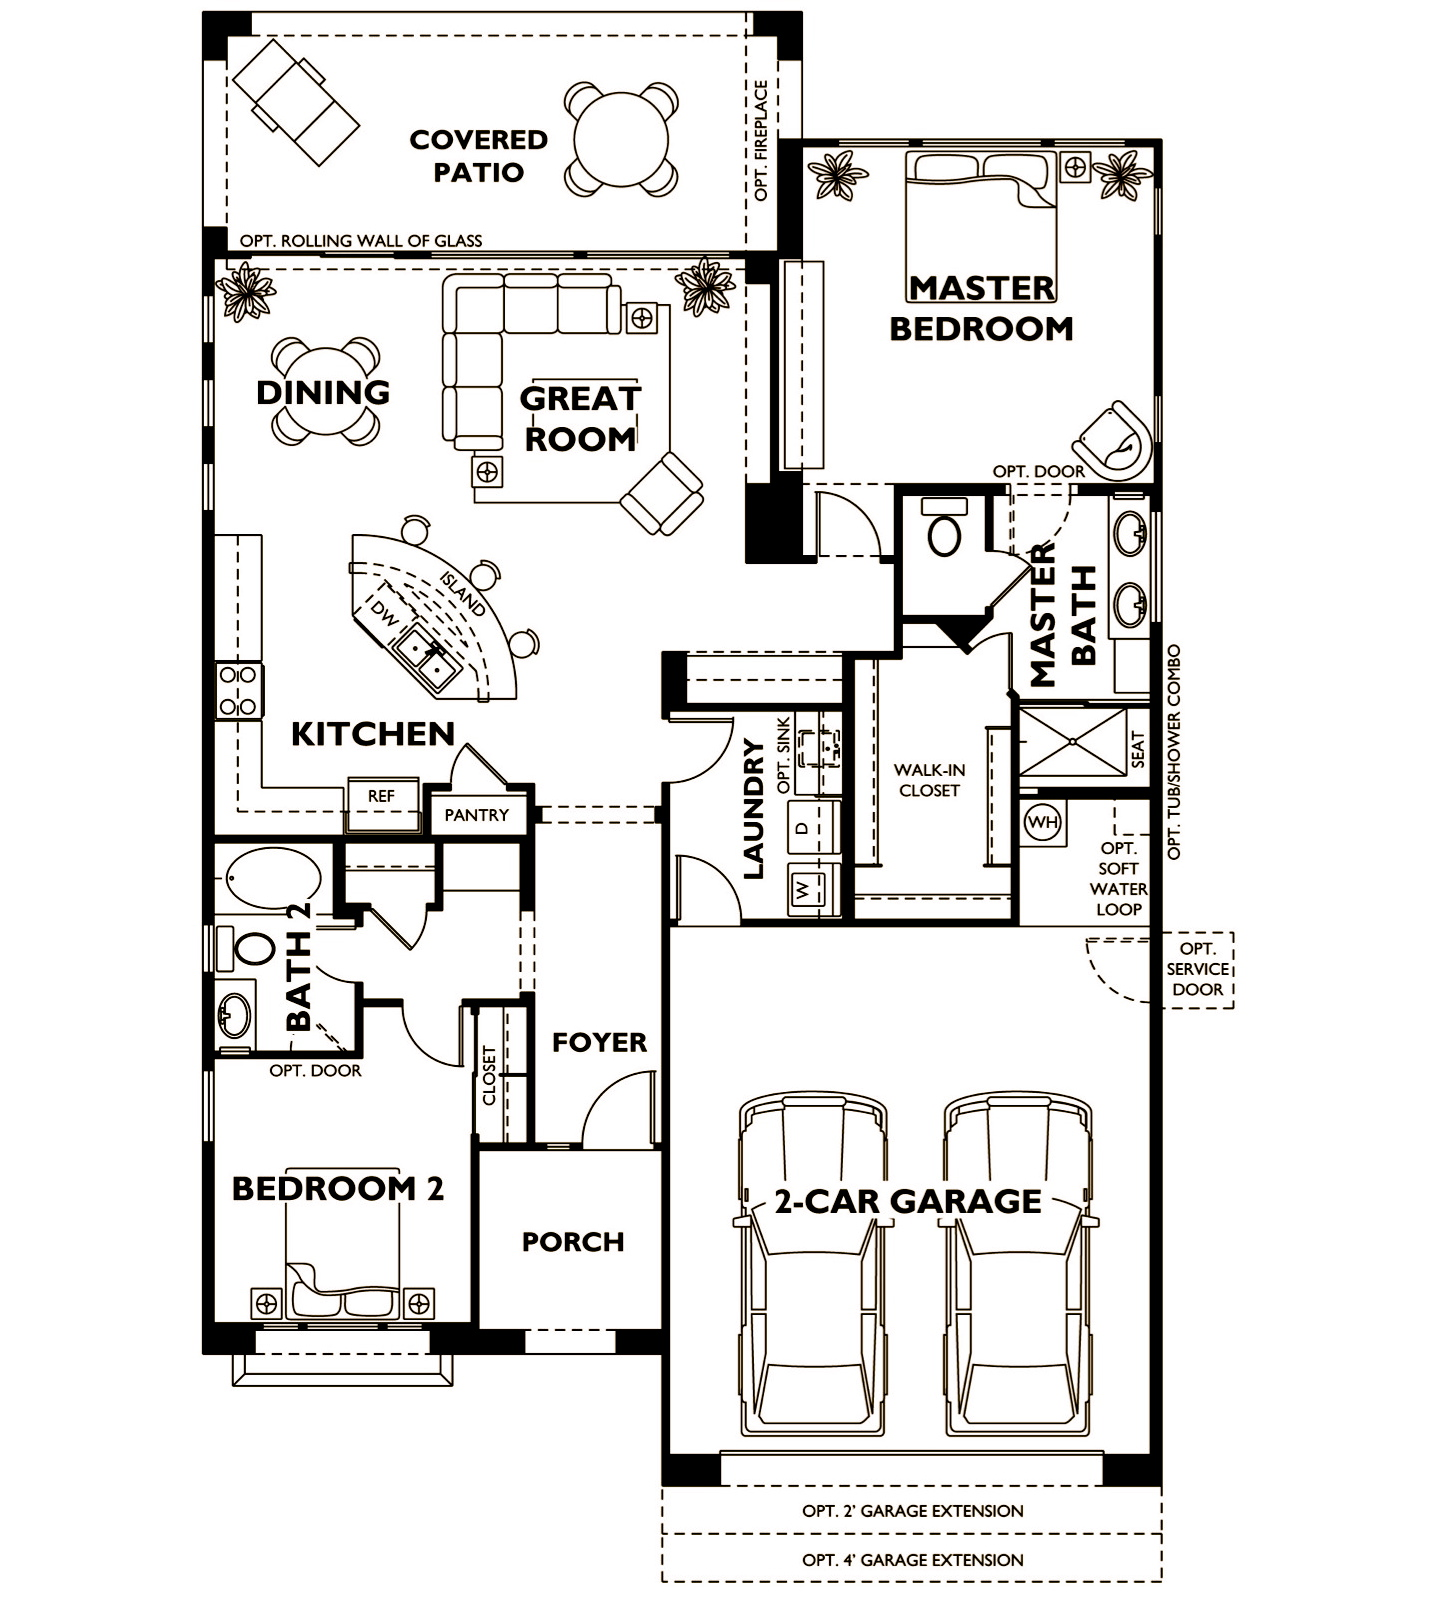 trilogy at vistancia floor plans josée marie plant pllc gri e